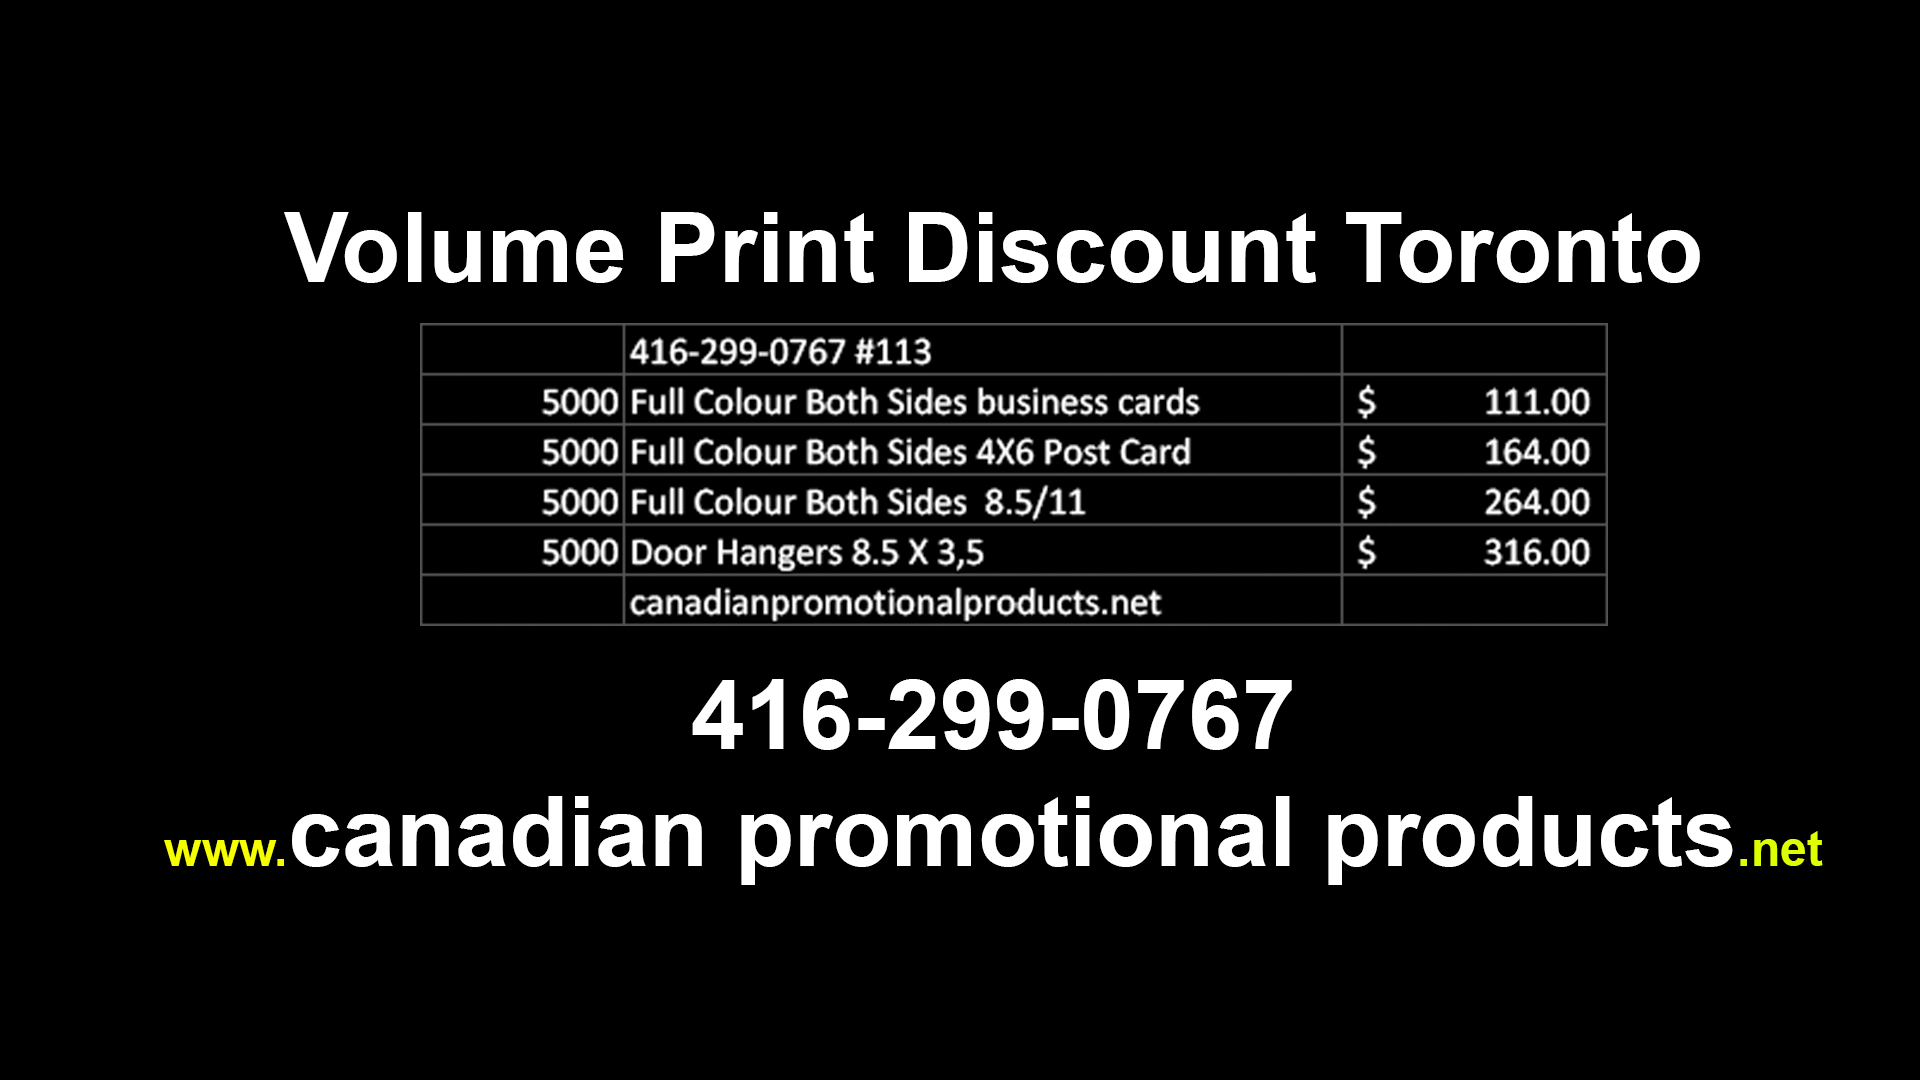 Volume print discount toronto printer printing services business cards postcard business card template business card printing business card design color printer poster printing reheart Images